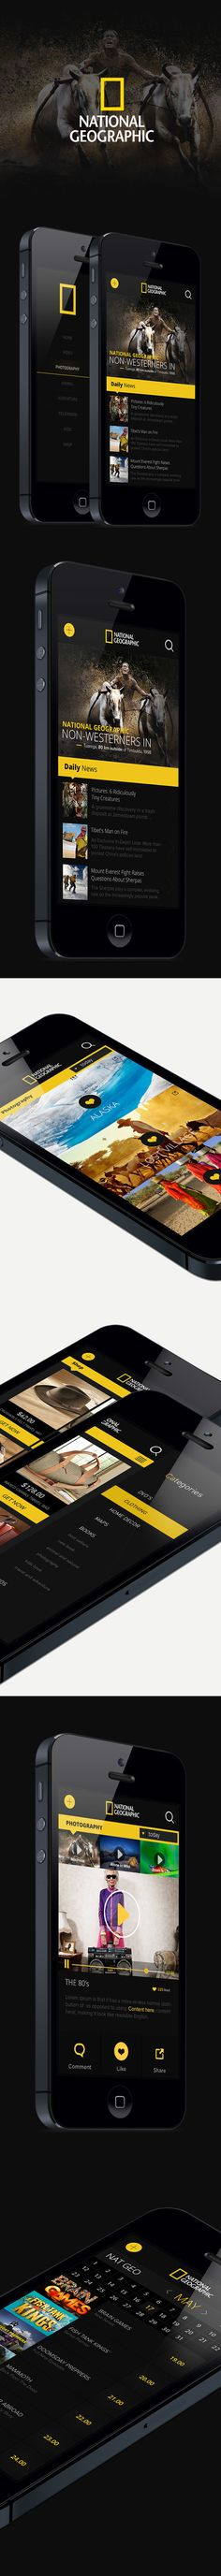 National Geographic iphone App. on Behance